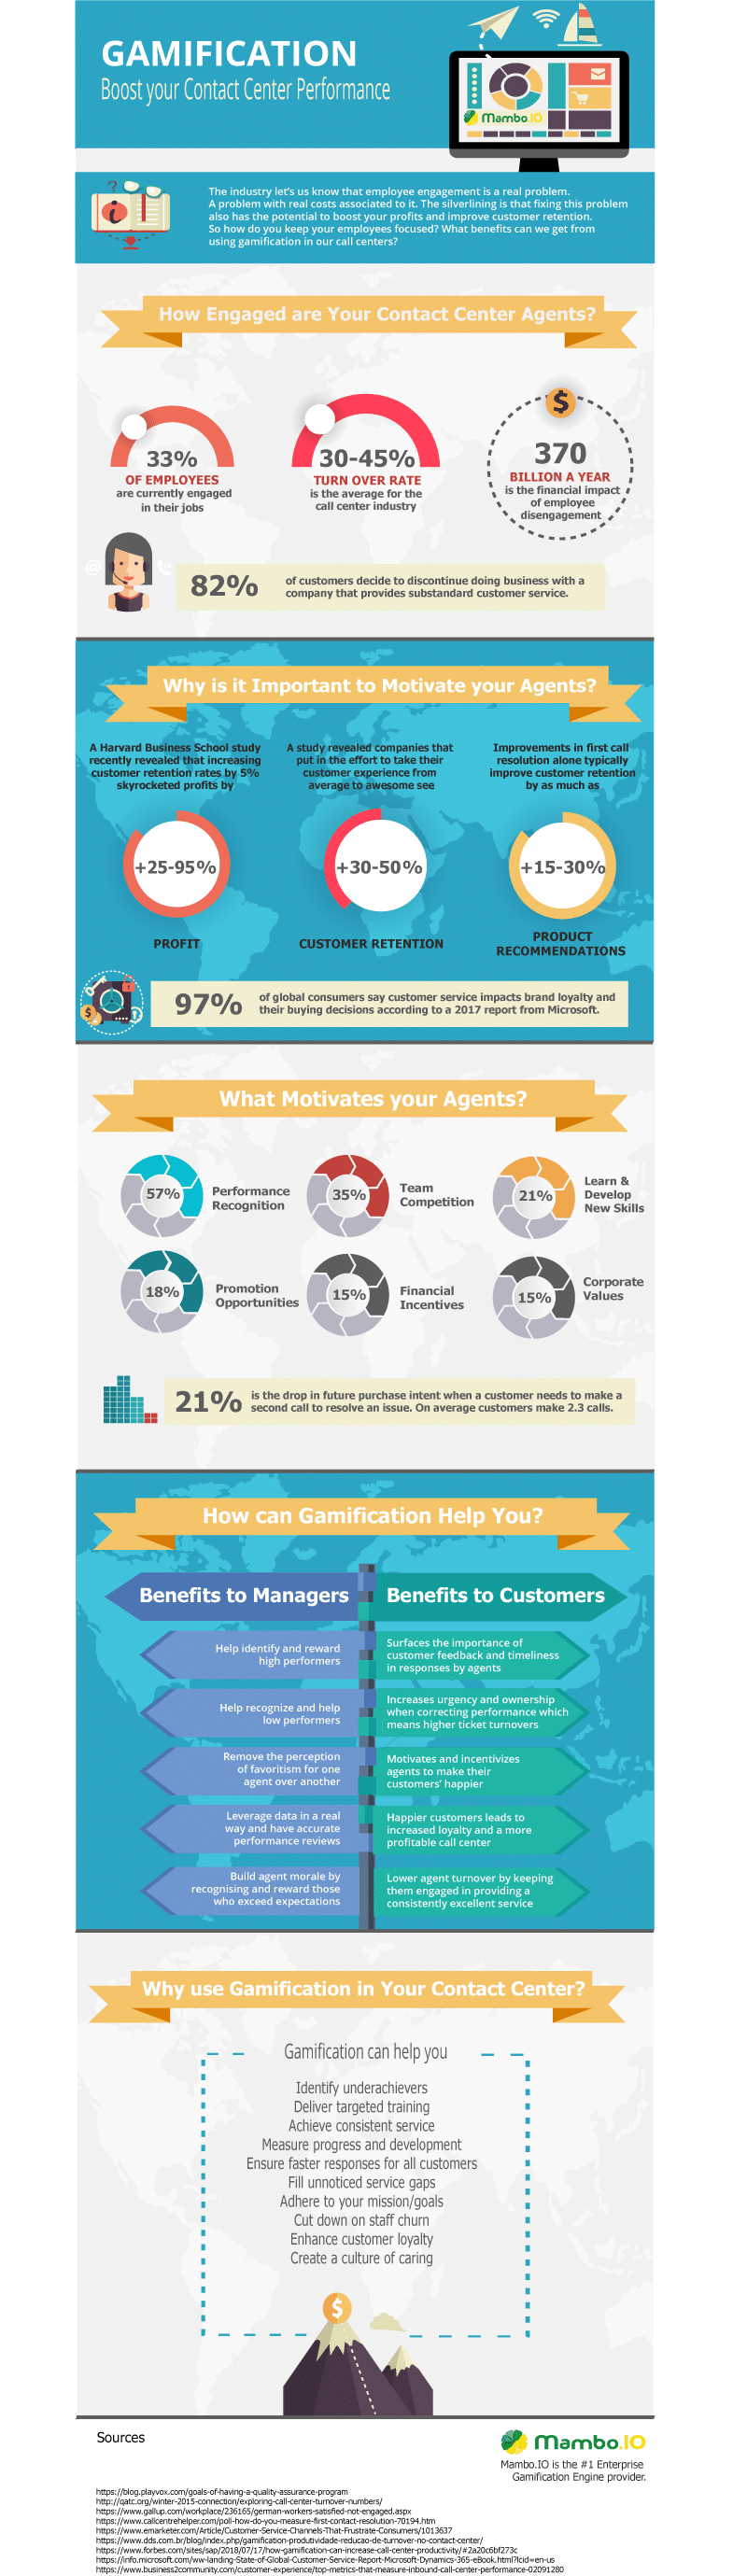 Gamification and Contact Center Engagement Infographic